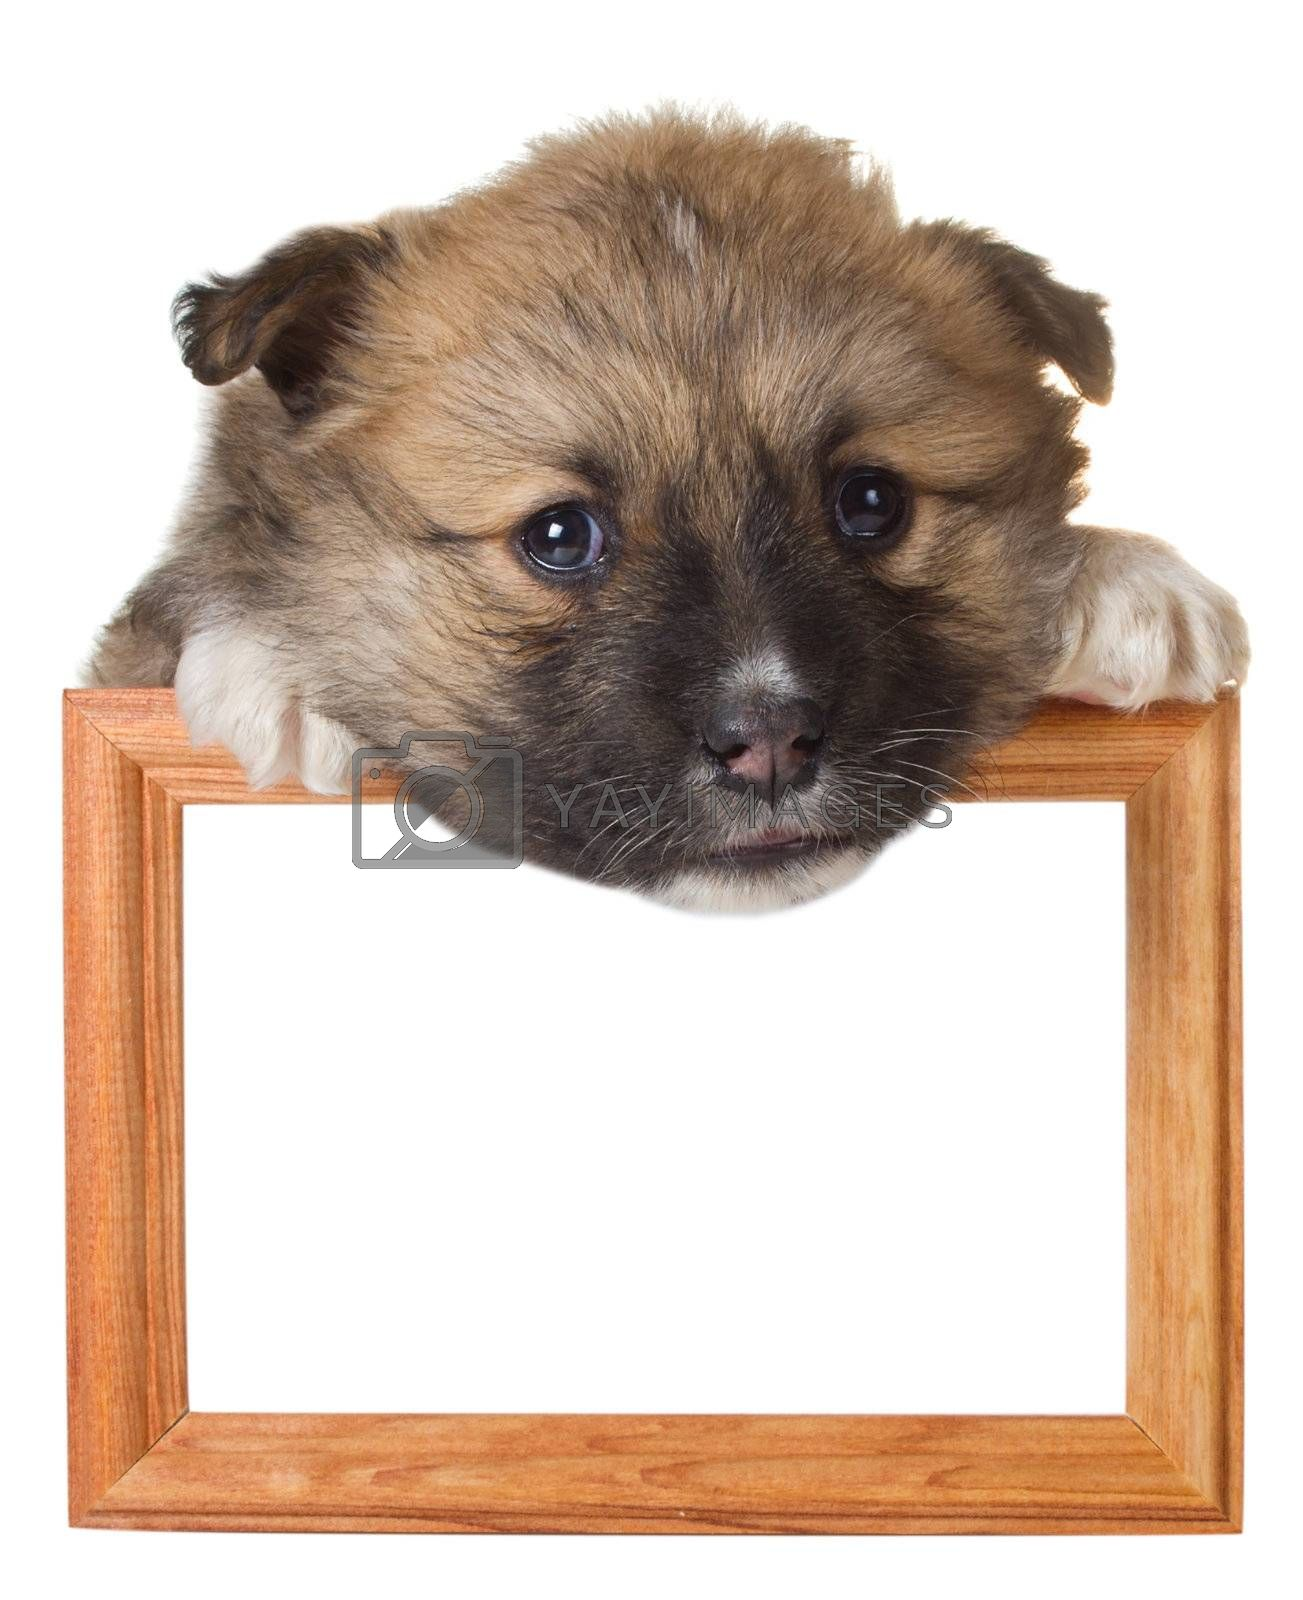 close-up puppy with frame, isolated on white